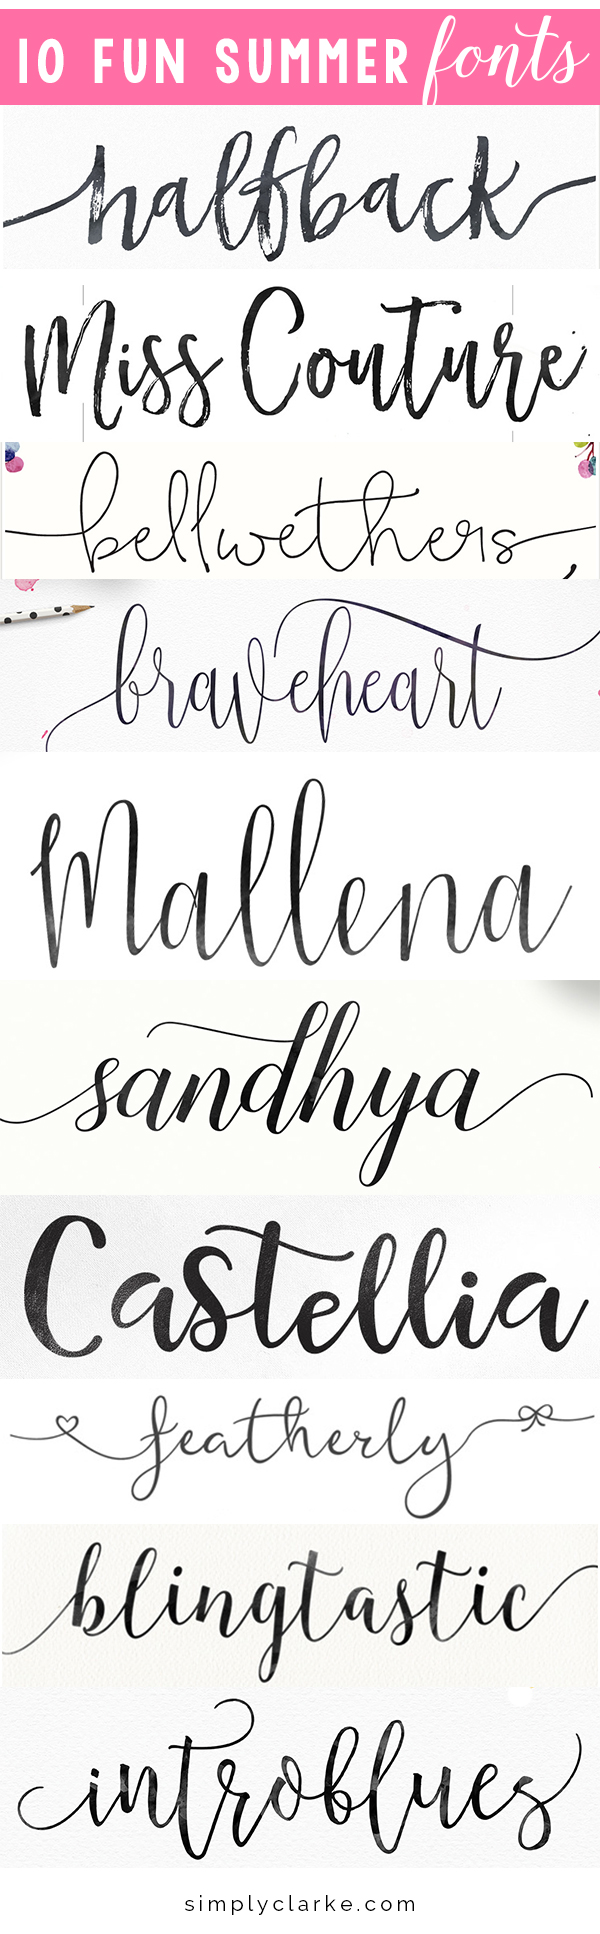 10 Fun Summer Fonts